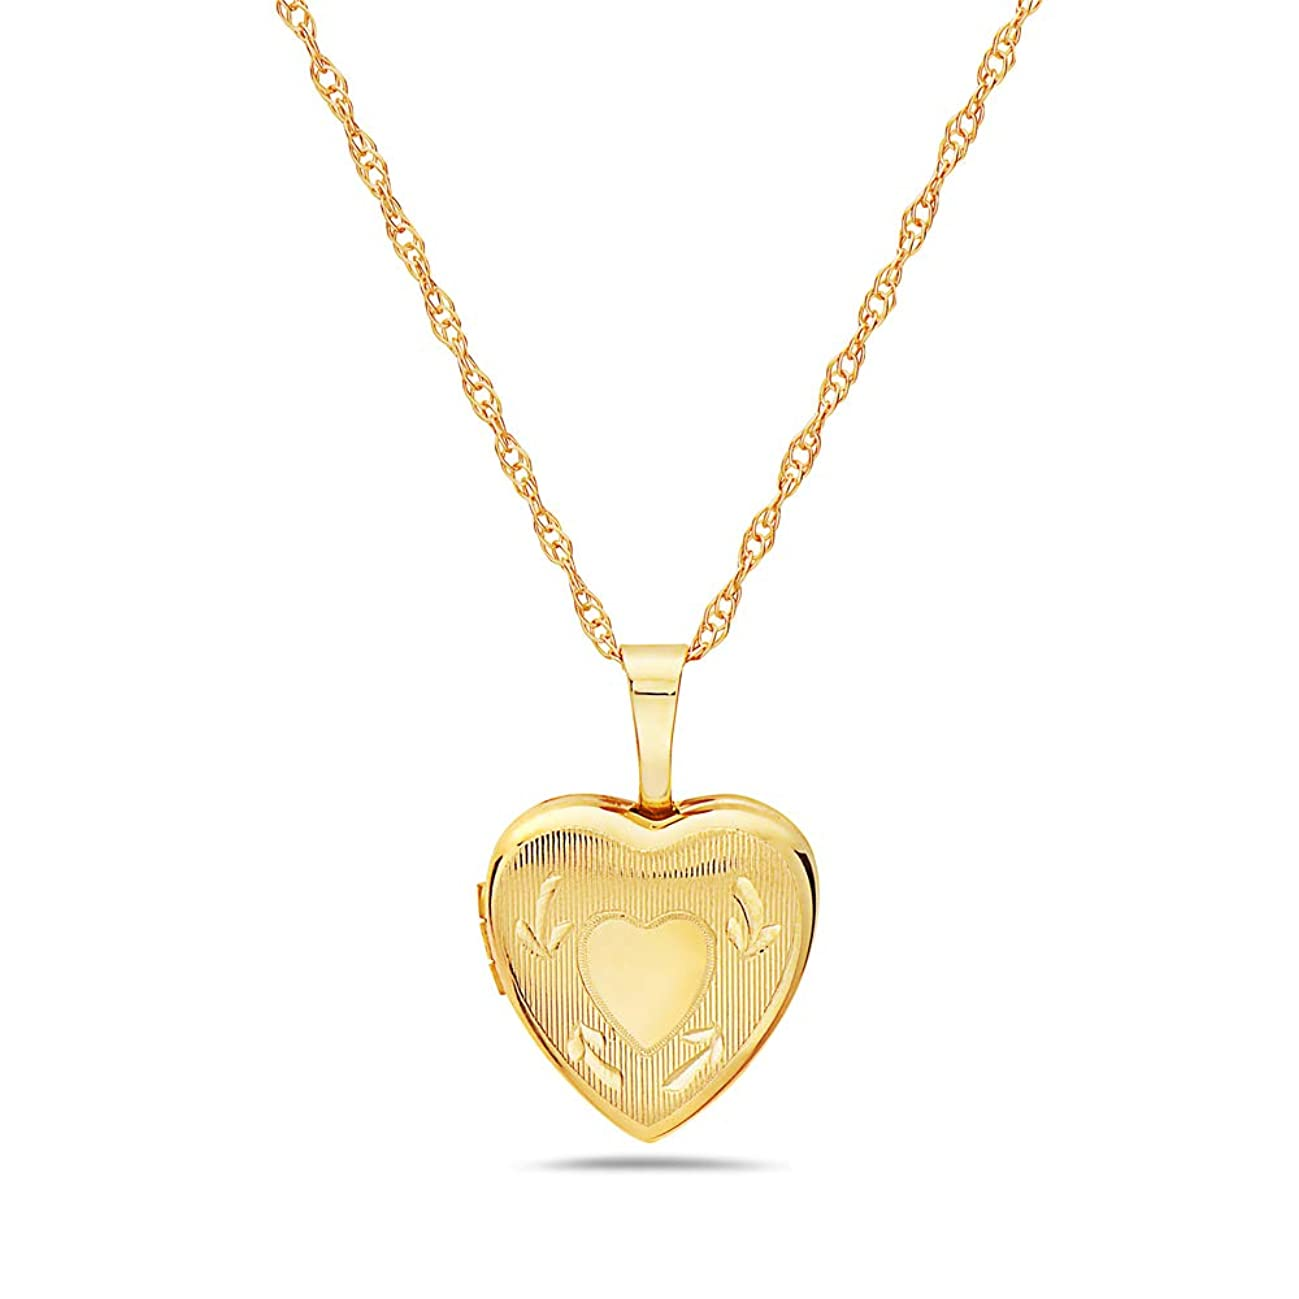 Pori Jewelers 14K Solid Yellow Gold 12mm Heart Locket Pendant Necklace-in 14K Gold Rope Chain Available